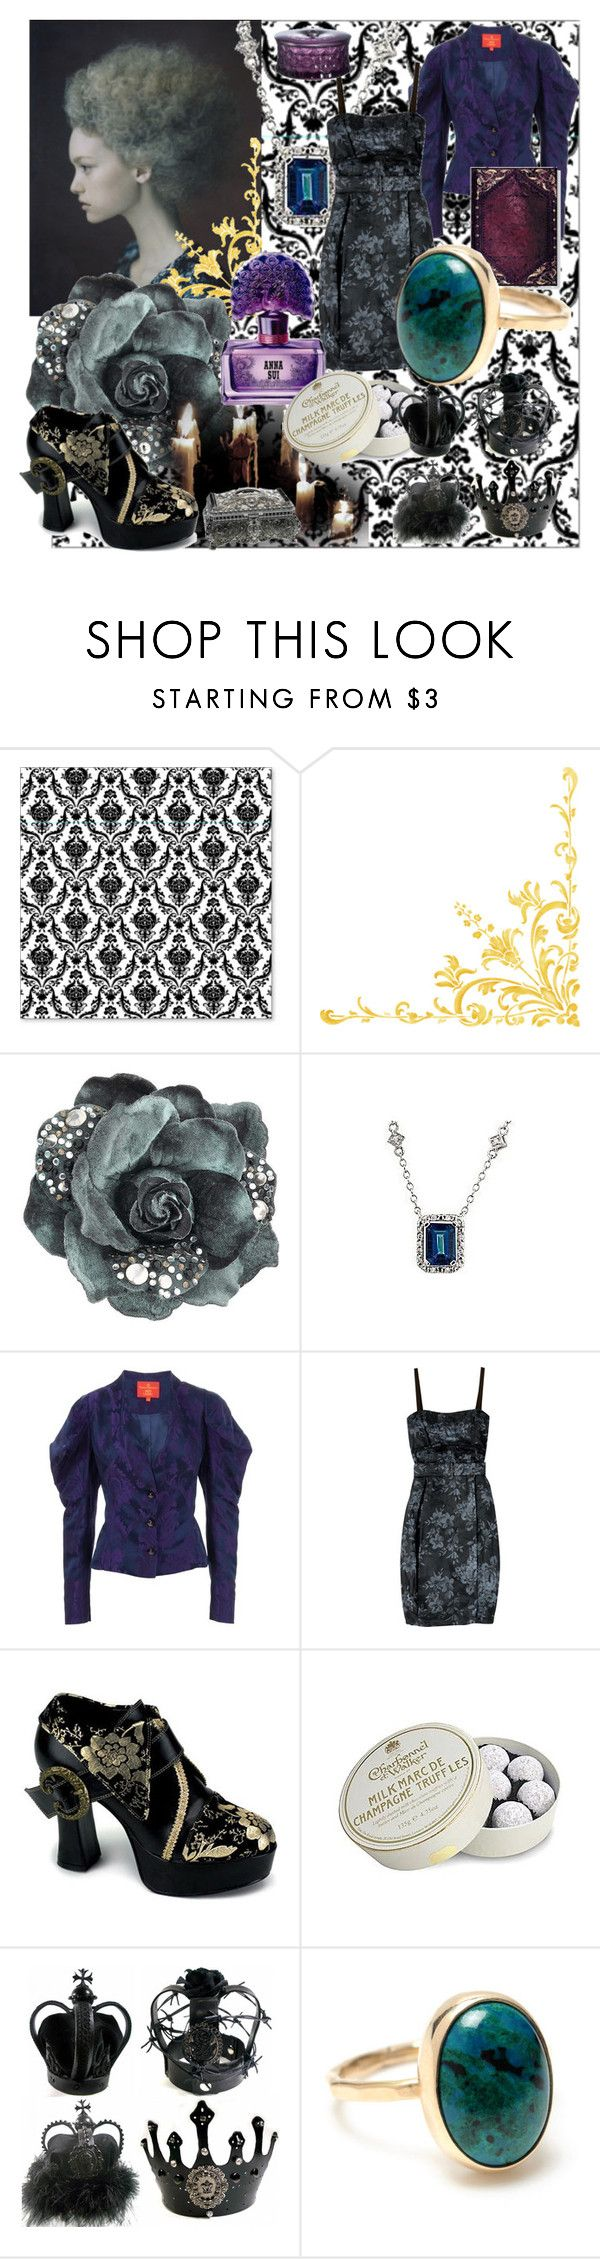 """""""no name"""" by annanoire ❤ liked on Polyvore featuring Miss Selfridge, Vivienne Westwood Red Label, Vera Wang, Anna Sui, Cristal D'Arques, Charbonnel et Walker, Melissa, queen and brocade"""